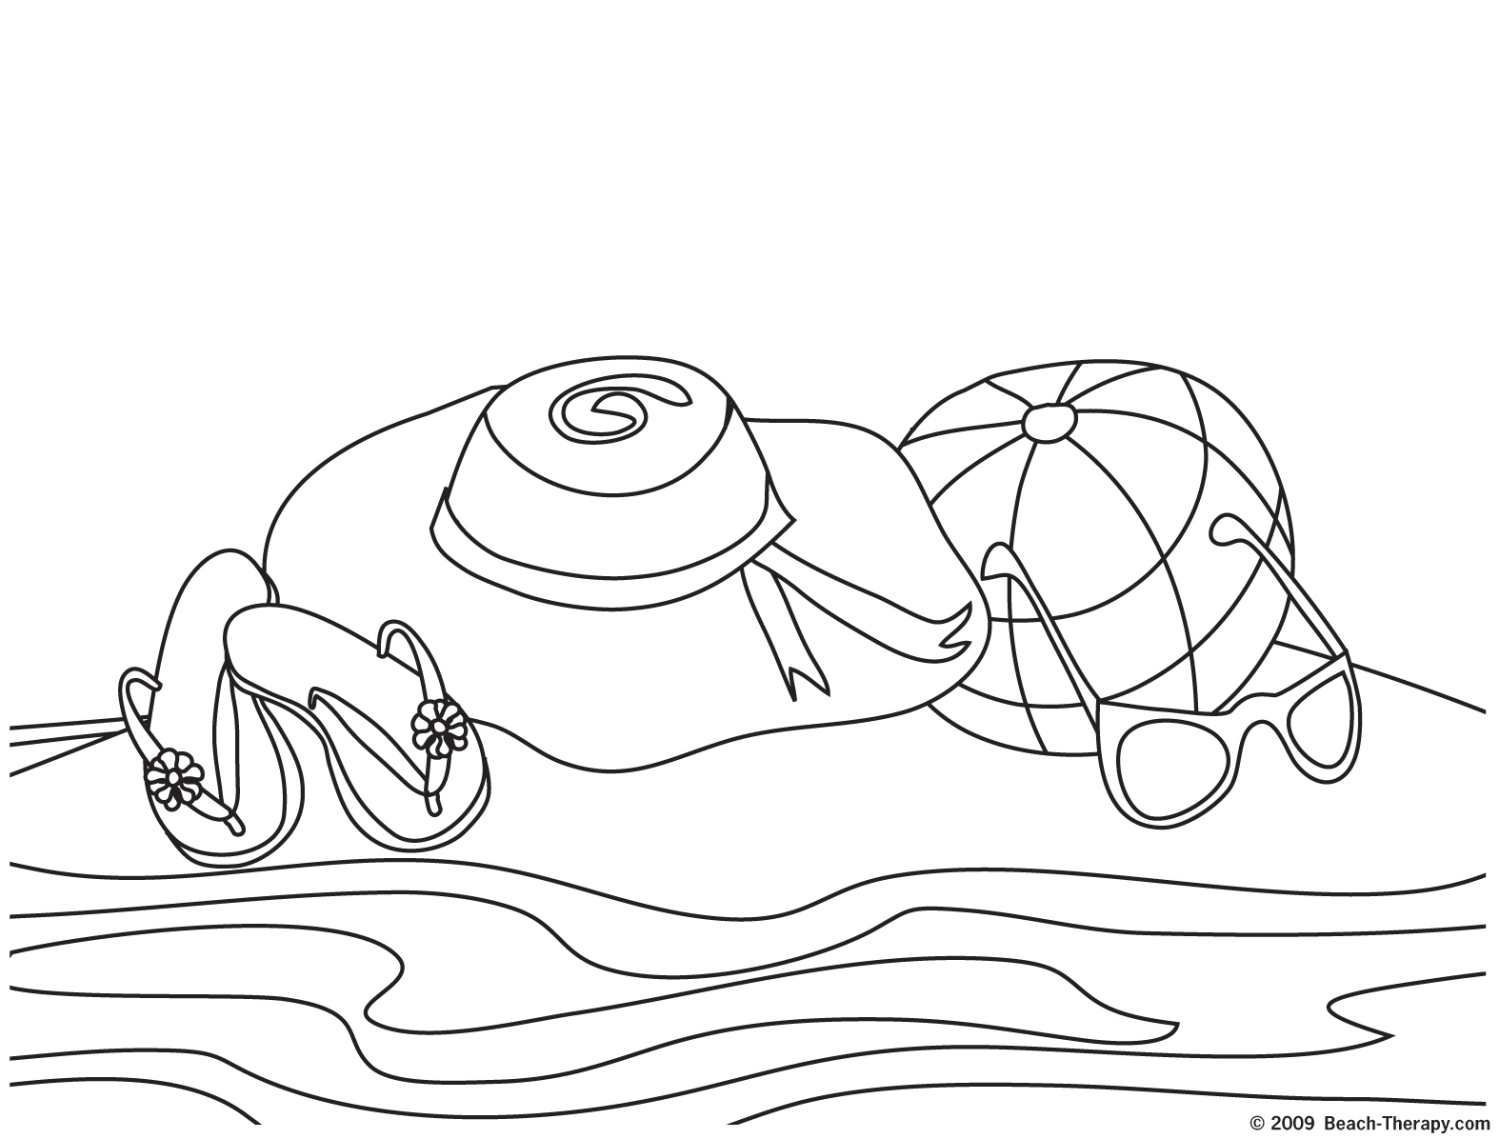 coloring pages and beach - photo#18